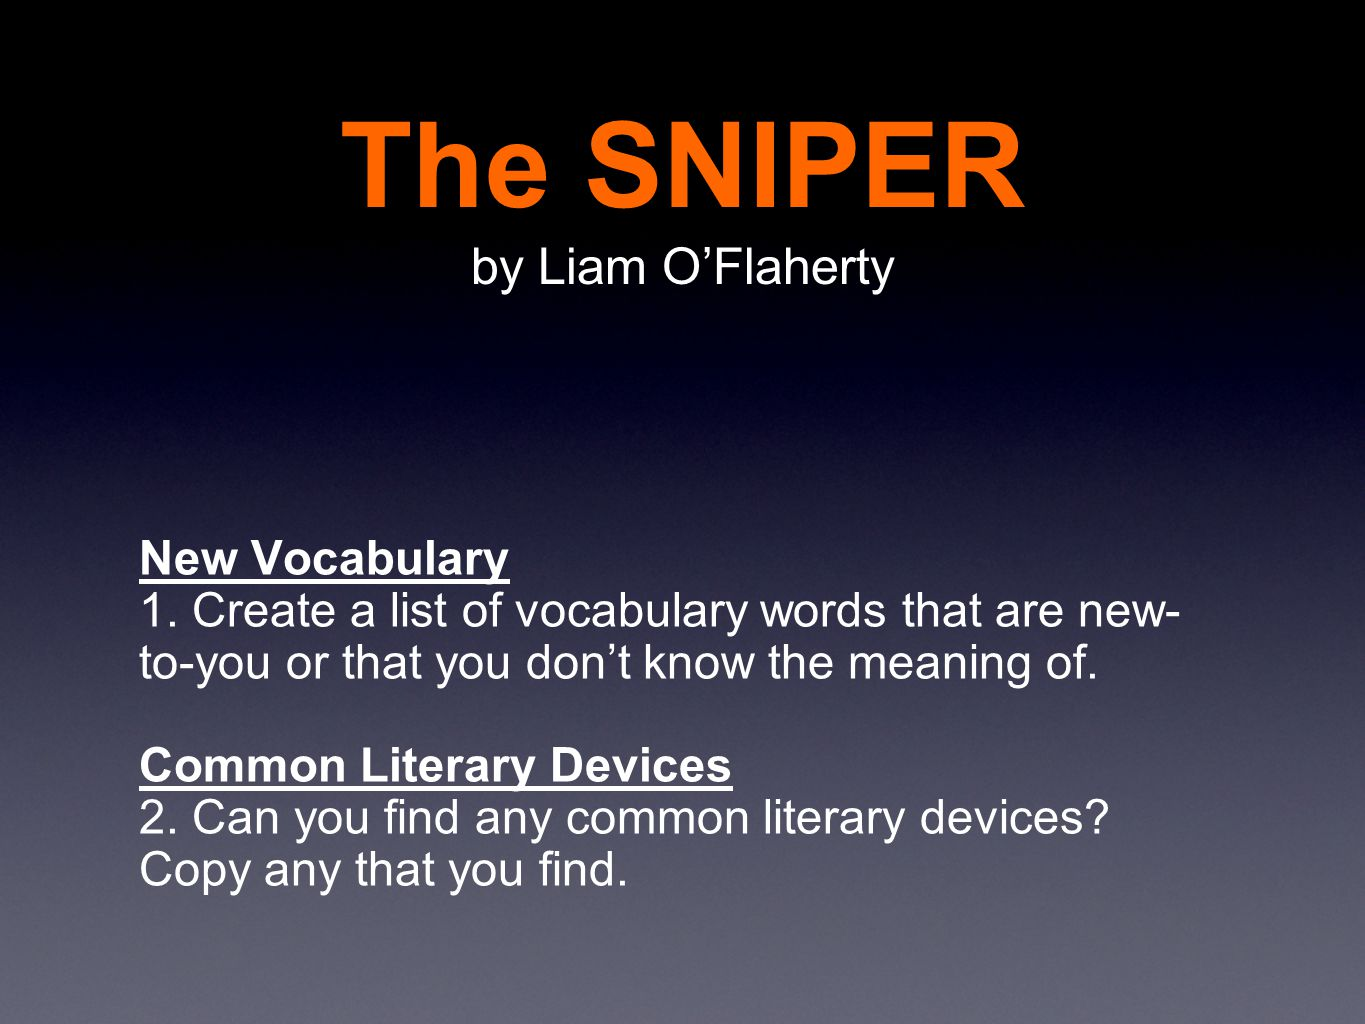 A Short Story    The SNIPER by Liam O'Flaherty - ppt video